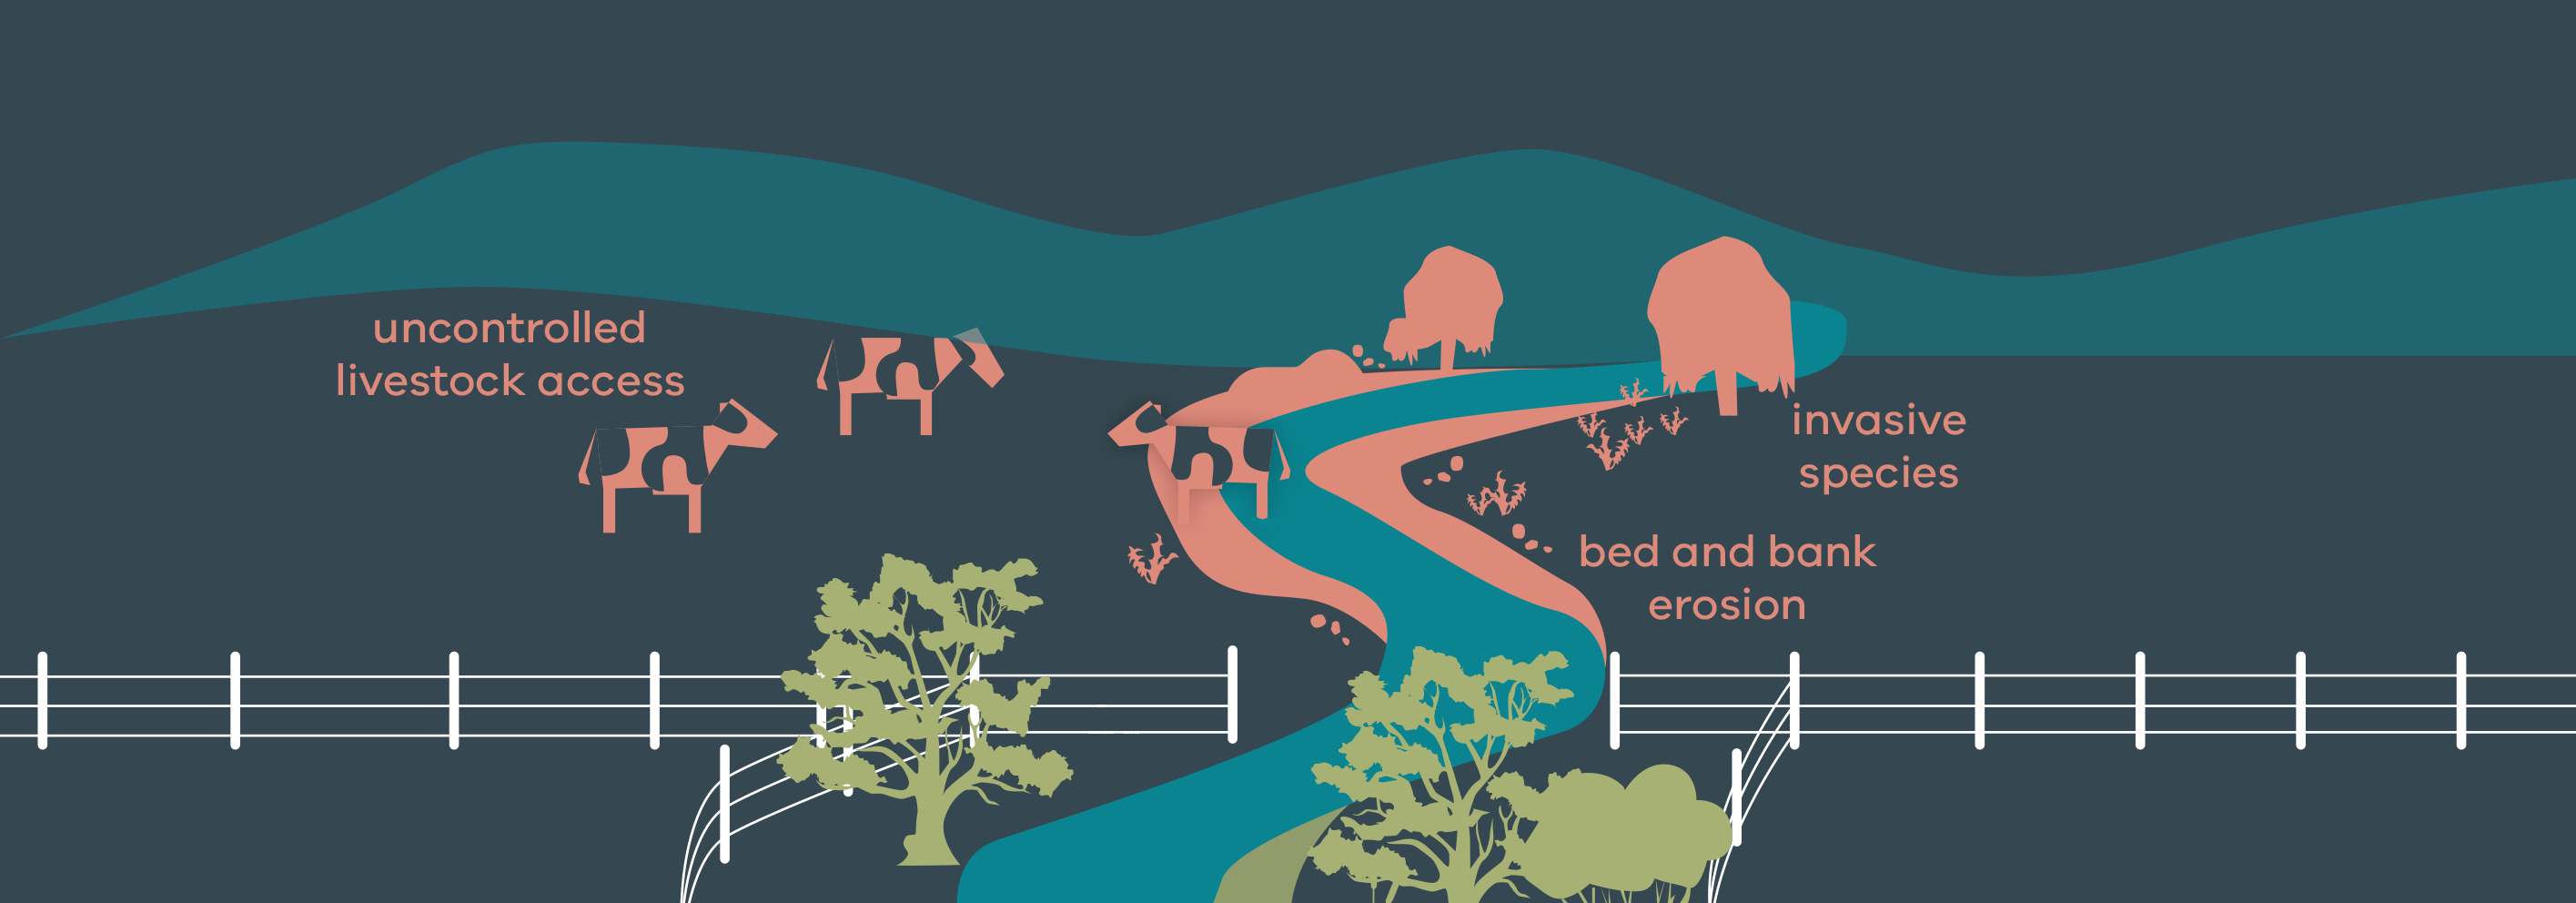 Stylised image showing threats to riparian land including uncontrolled livestock access, invasive species and bed and bank erosion